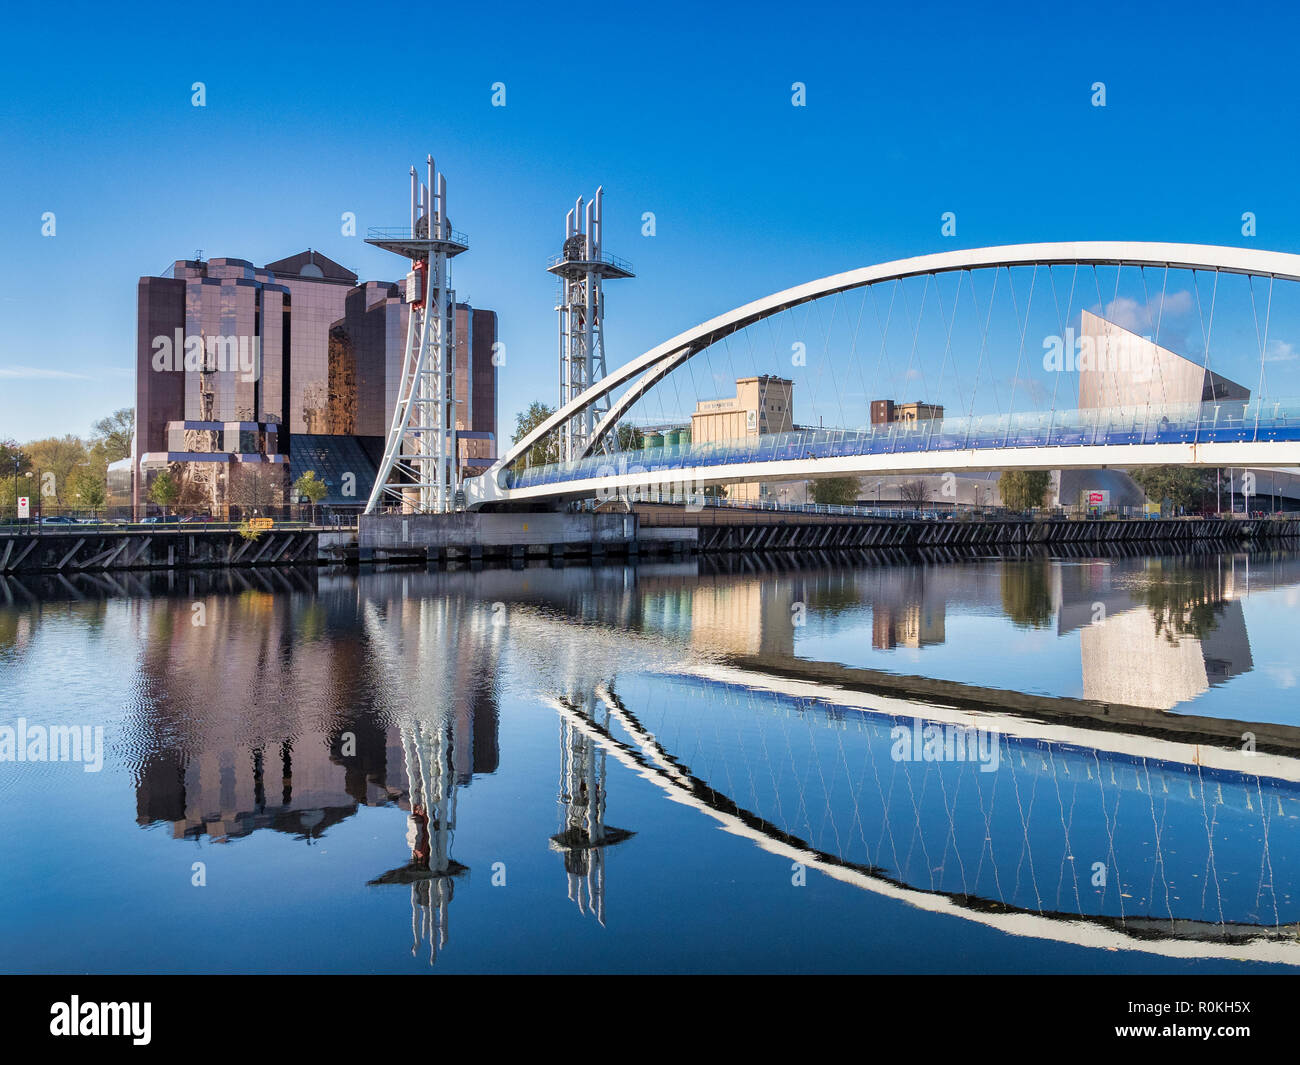 2 November 2018: Salford Quays, Manchester, UK - The Lowry Bridge, or Millennium Footbridge, which spans the Manchester Ship Canal between Salford and - Stock Image